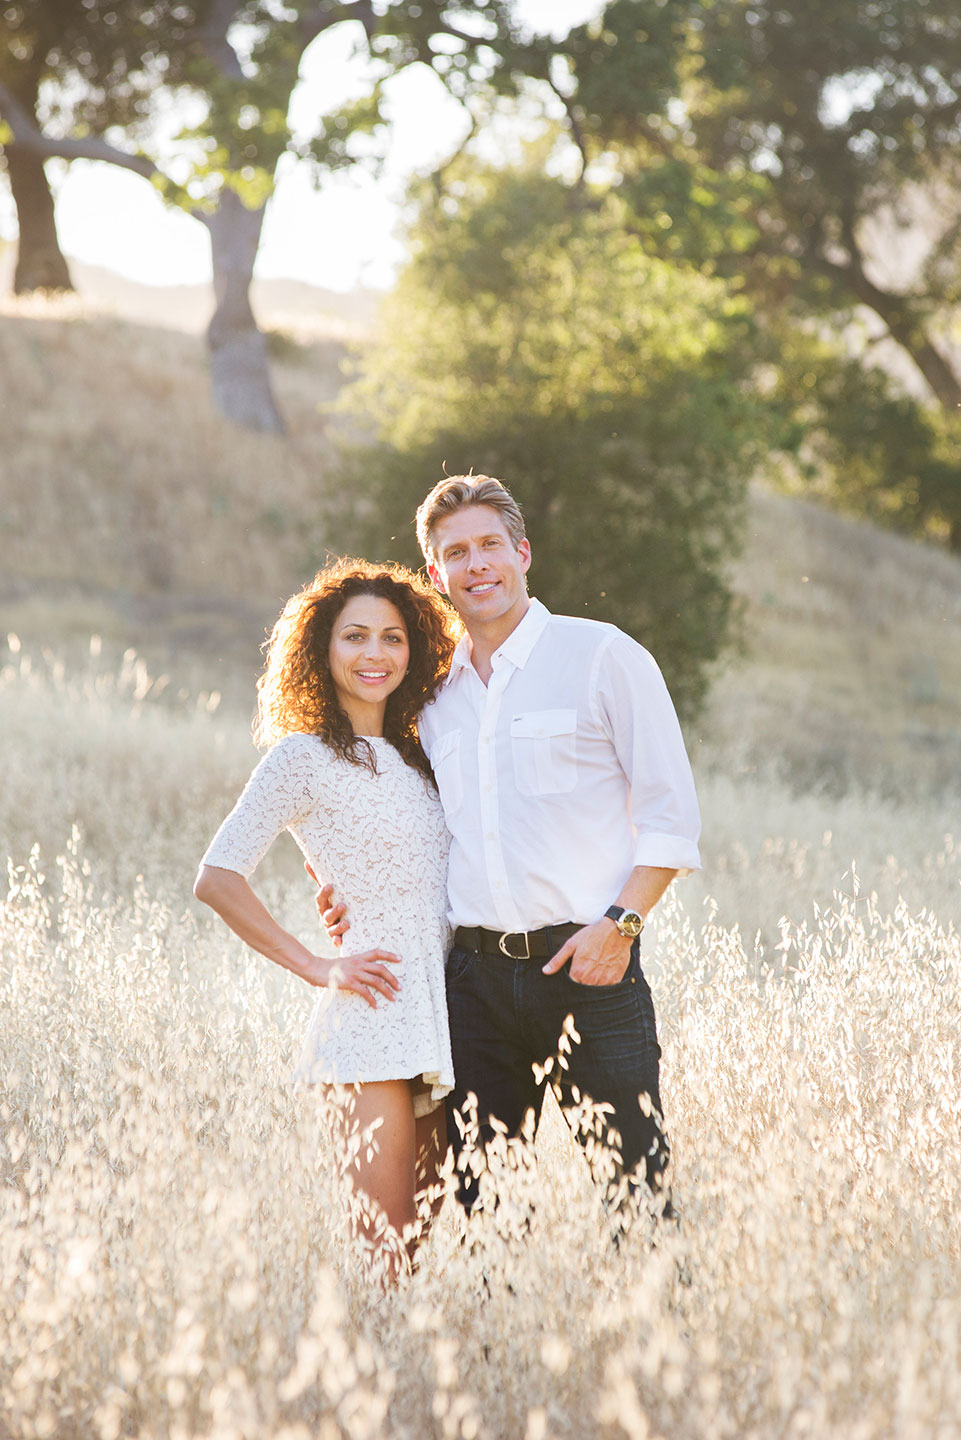 Erin-Shimazu-Photography-Engagement-Hannah8